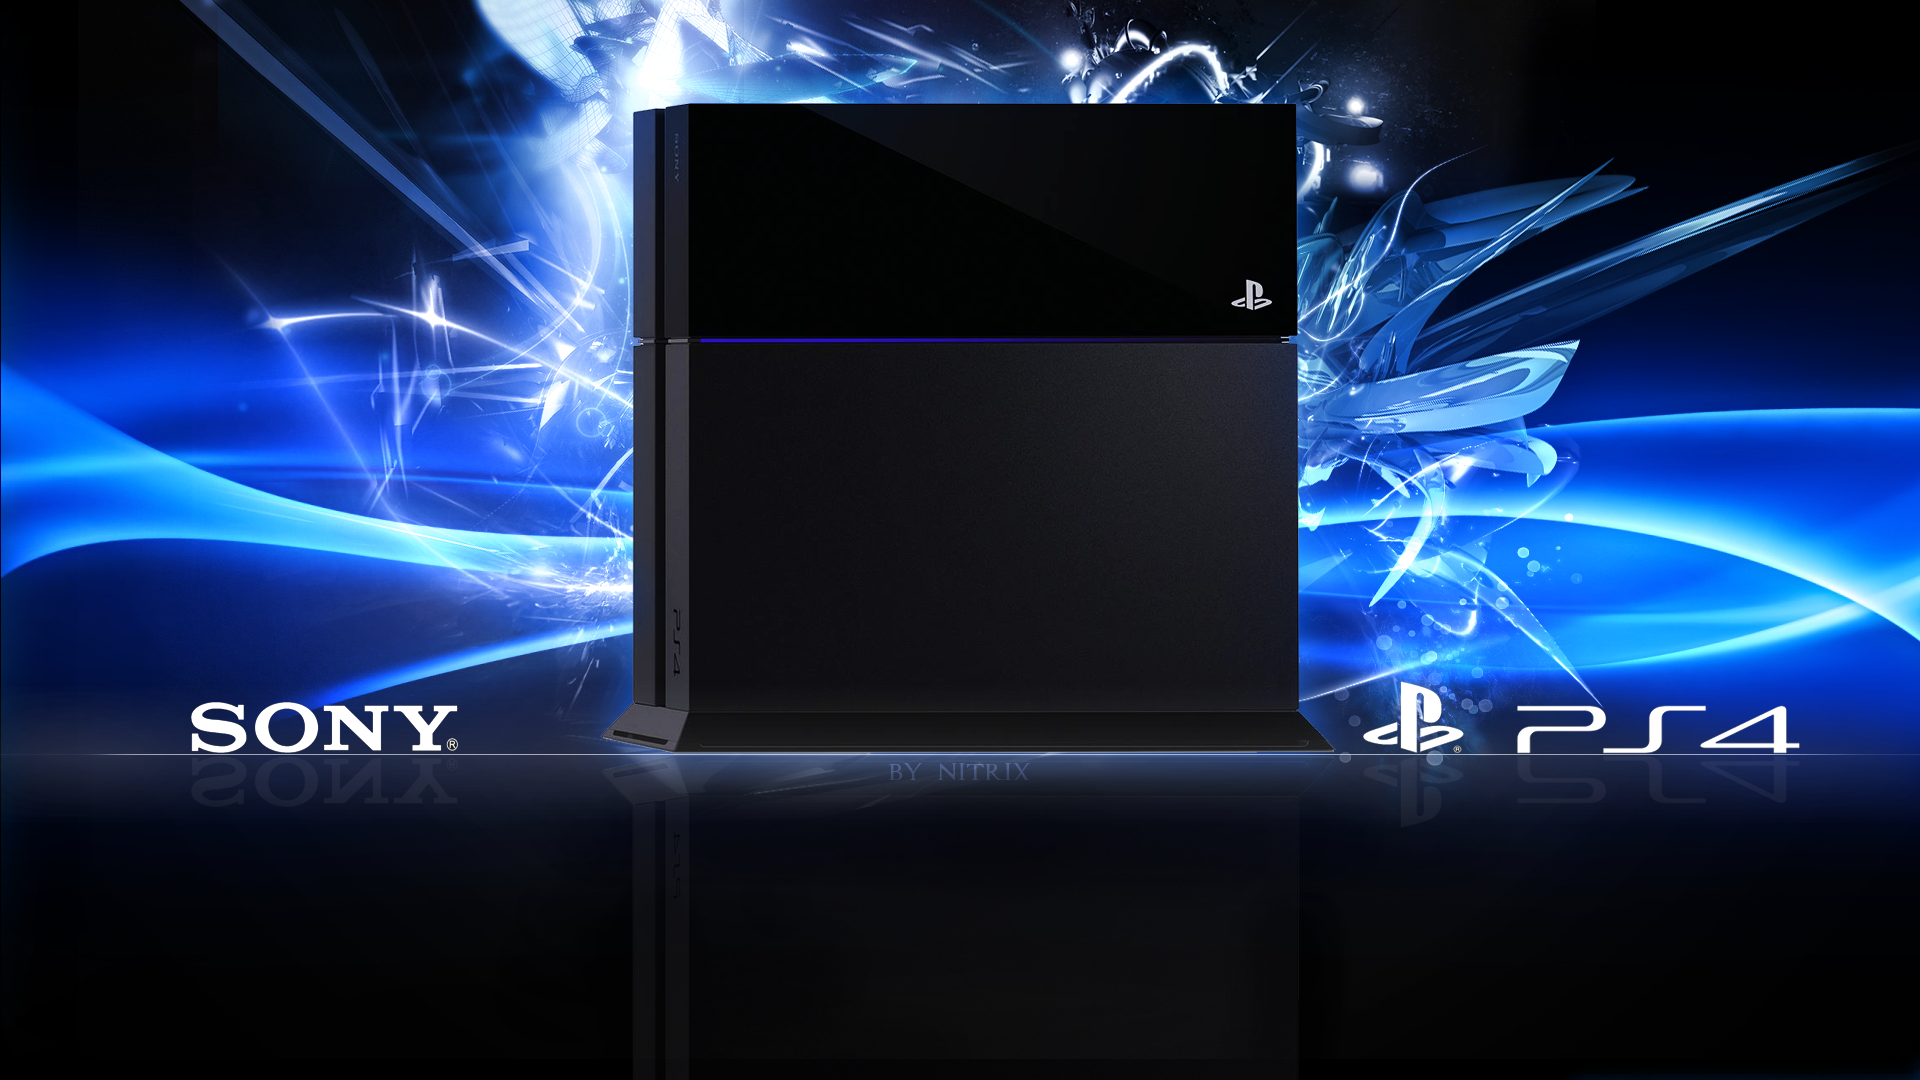 Ps4 Wallpaper Playstation, Best gaming console